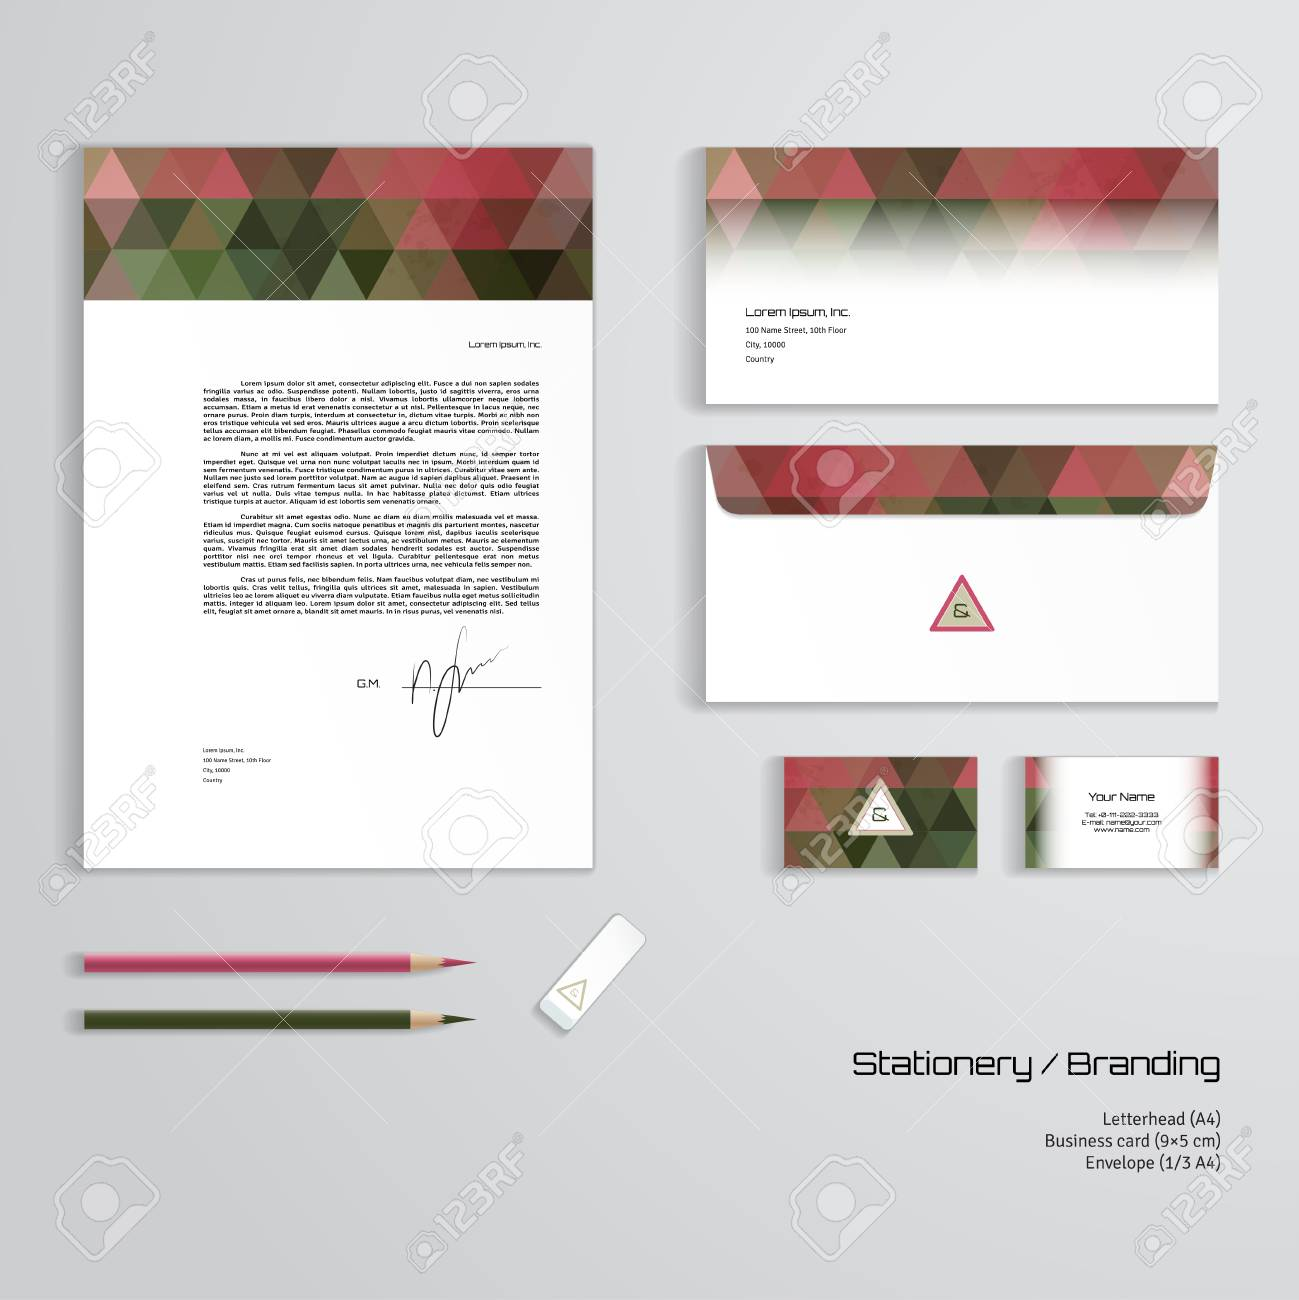 Vector corporate identity templates multicolored geometric pattern multicolored geometric pattern letterhead envelope business card pencils eraser easy editing of all parts and colors dimensions are given flashek Choice Image